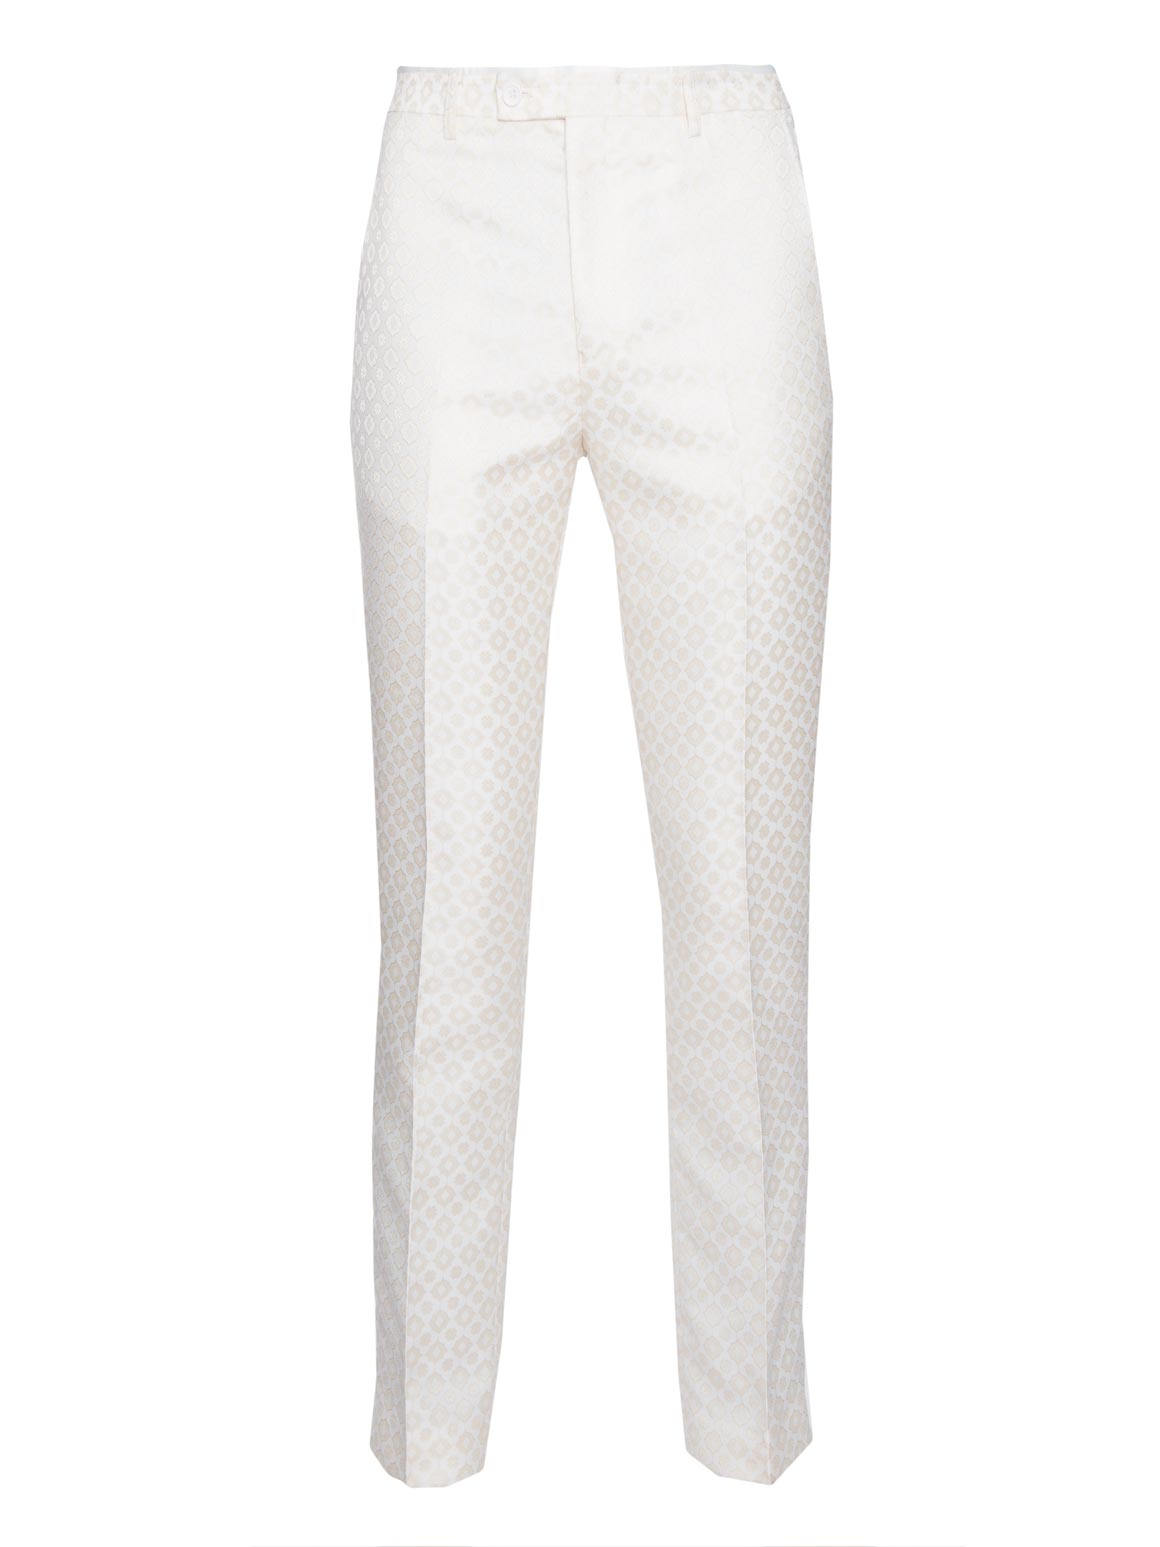 paisley & gray cream & gold diamond with white satin leg stripe slim fit tuxedo pant 2103p